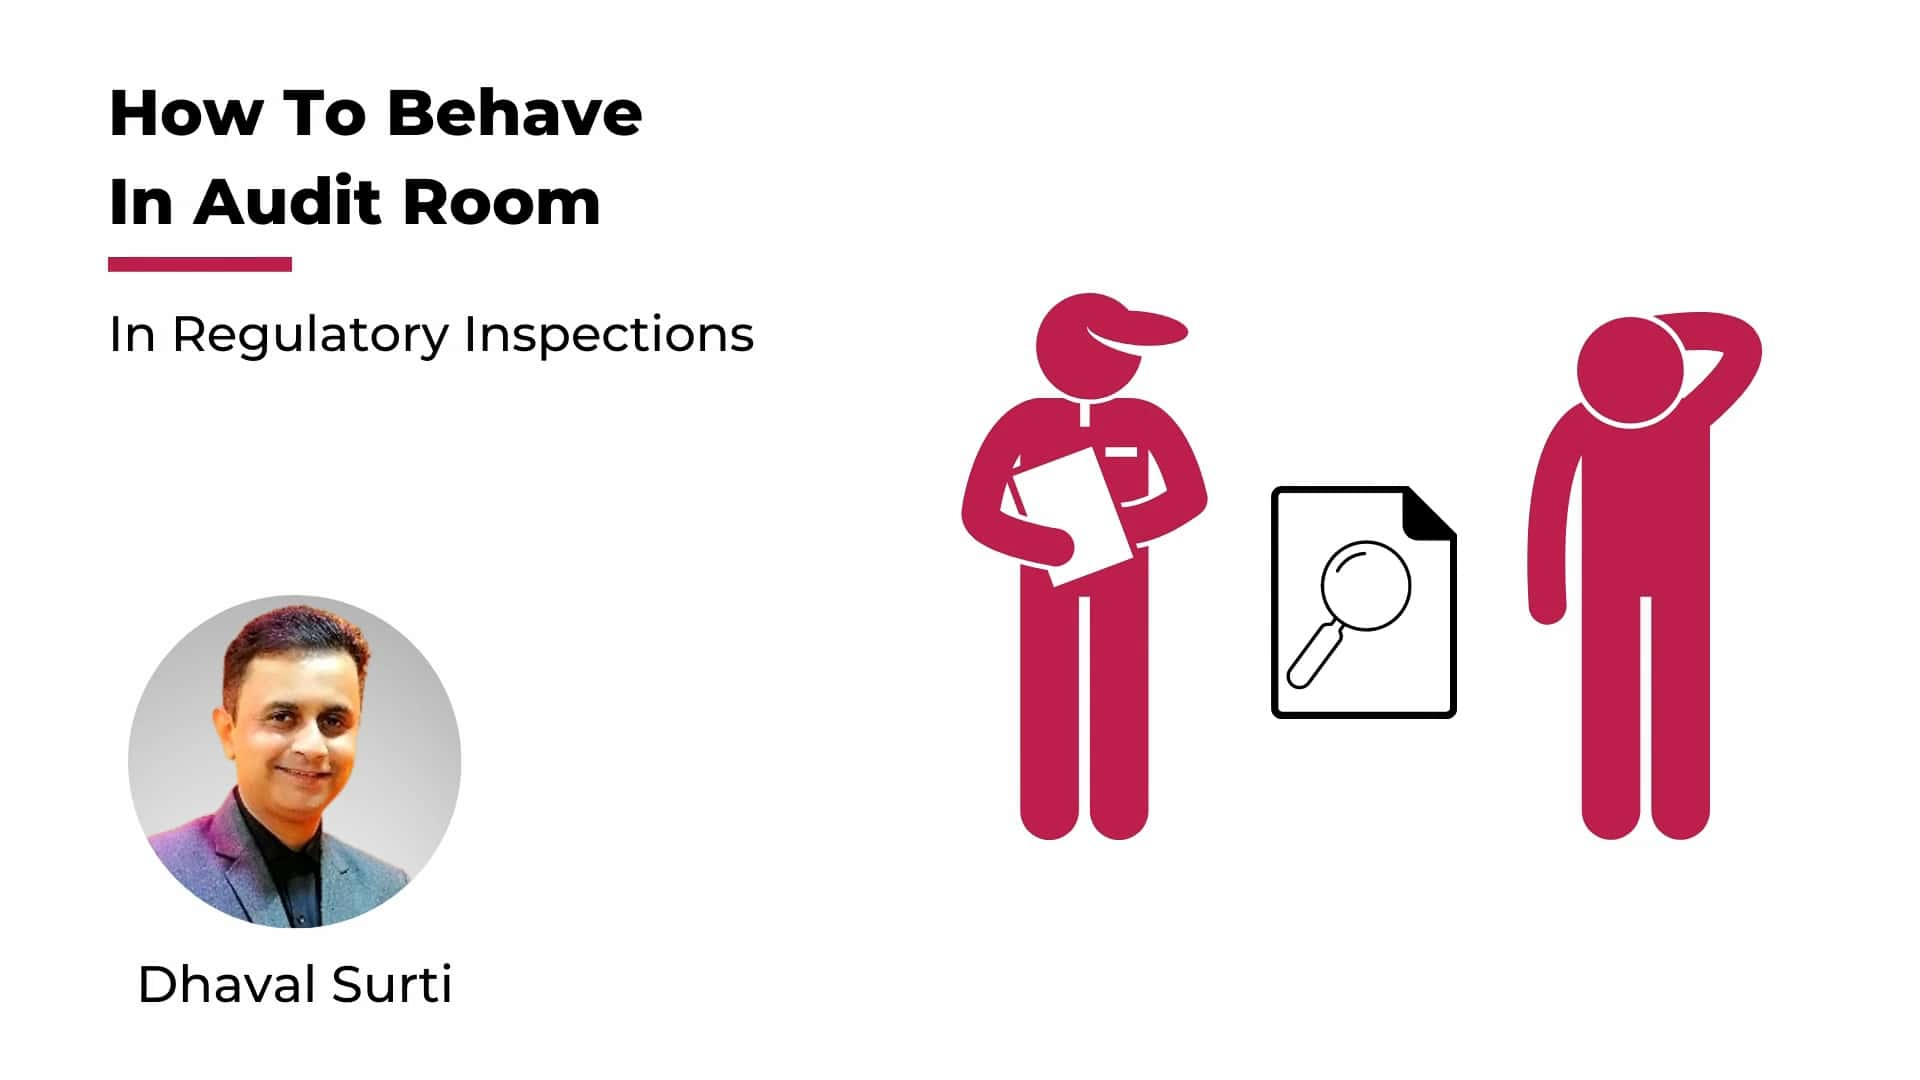 How To Behave in Audit Room While Facing Regulatory Inspection